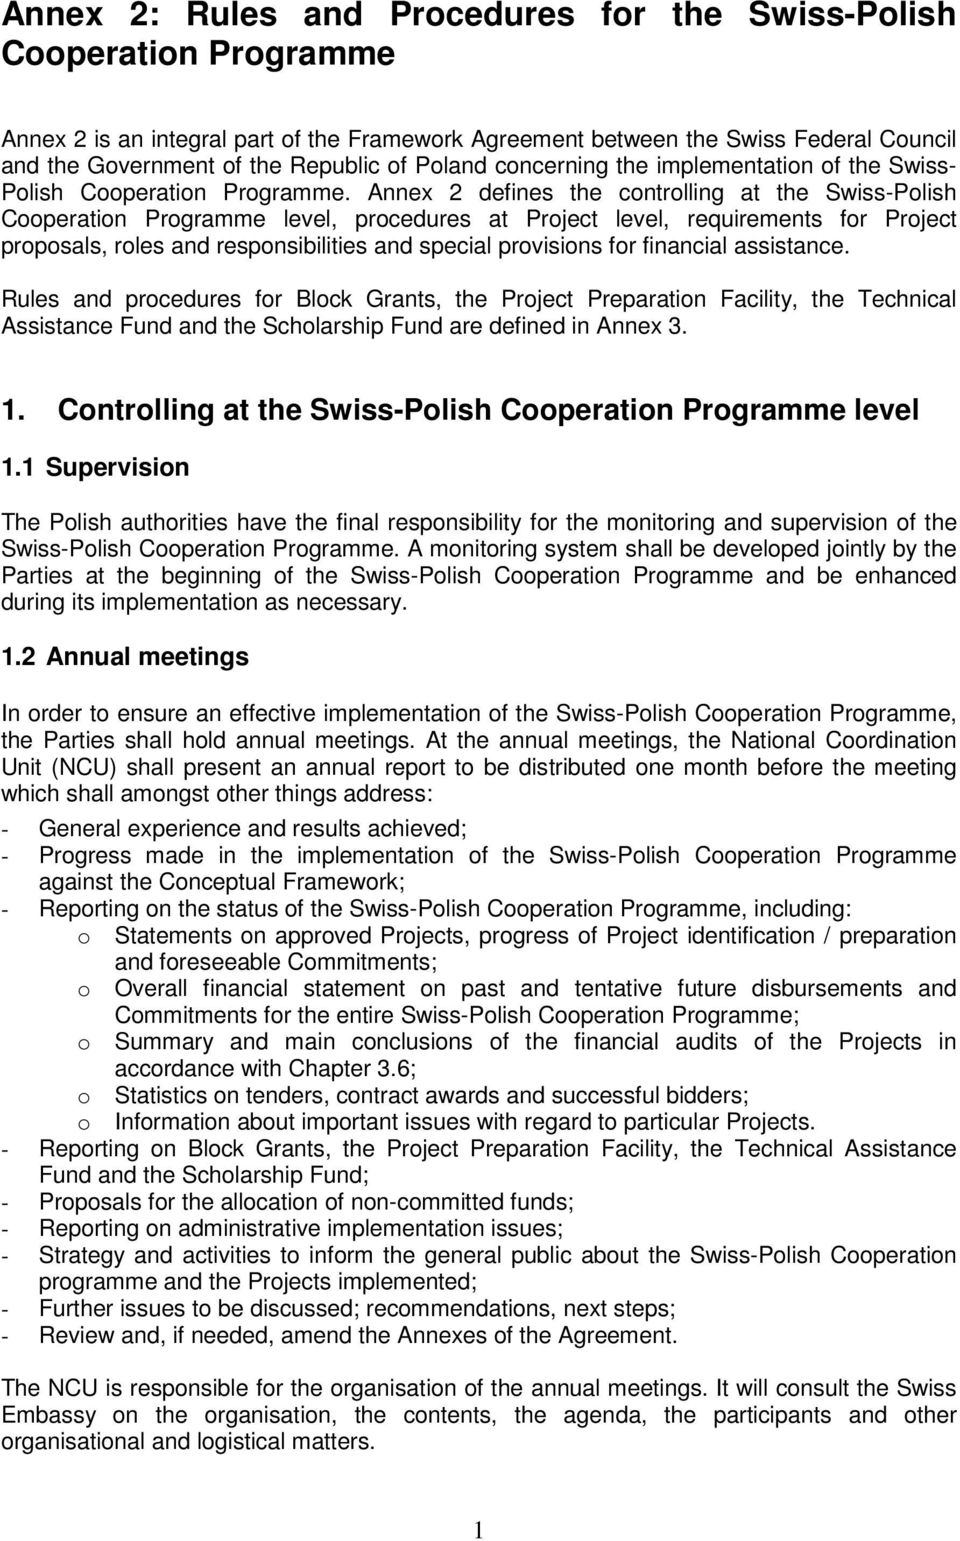 Annex 2 defines the controlling at the Swiss-Polish Cooperation Programme level, procedures at Project level, requirements for Project proposals, roles and responsibilities and special provisions for